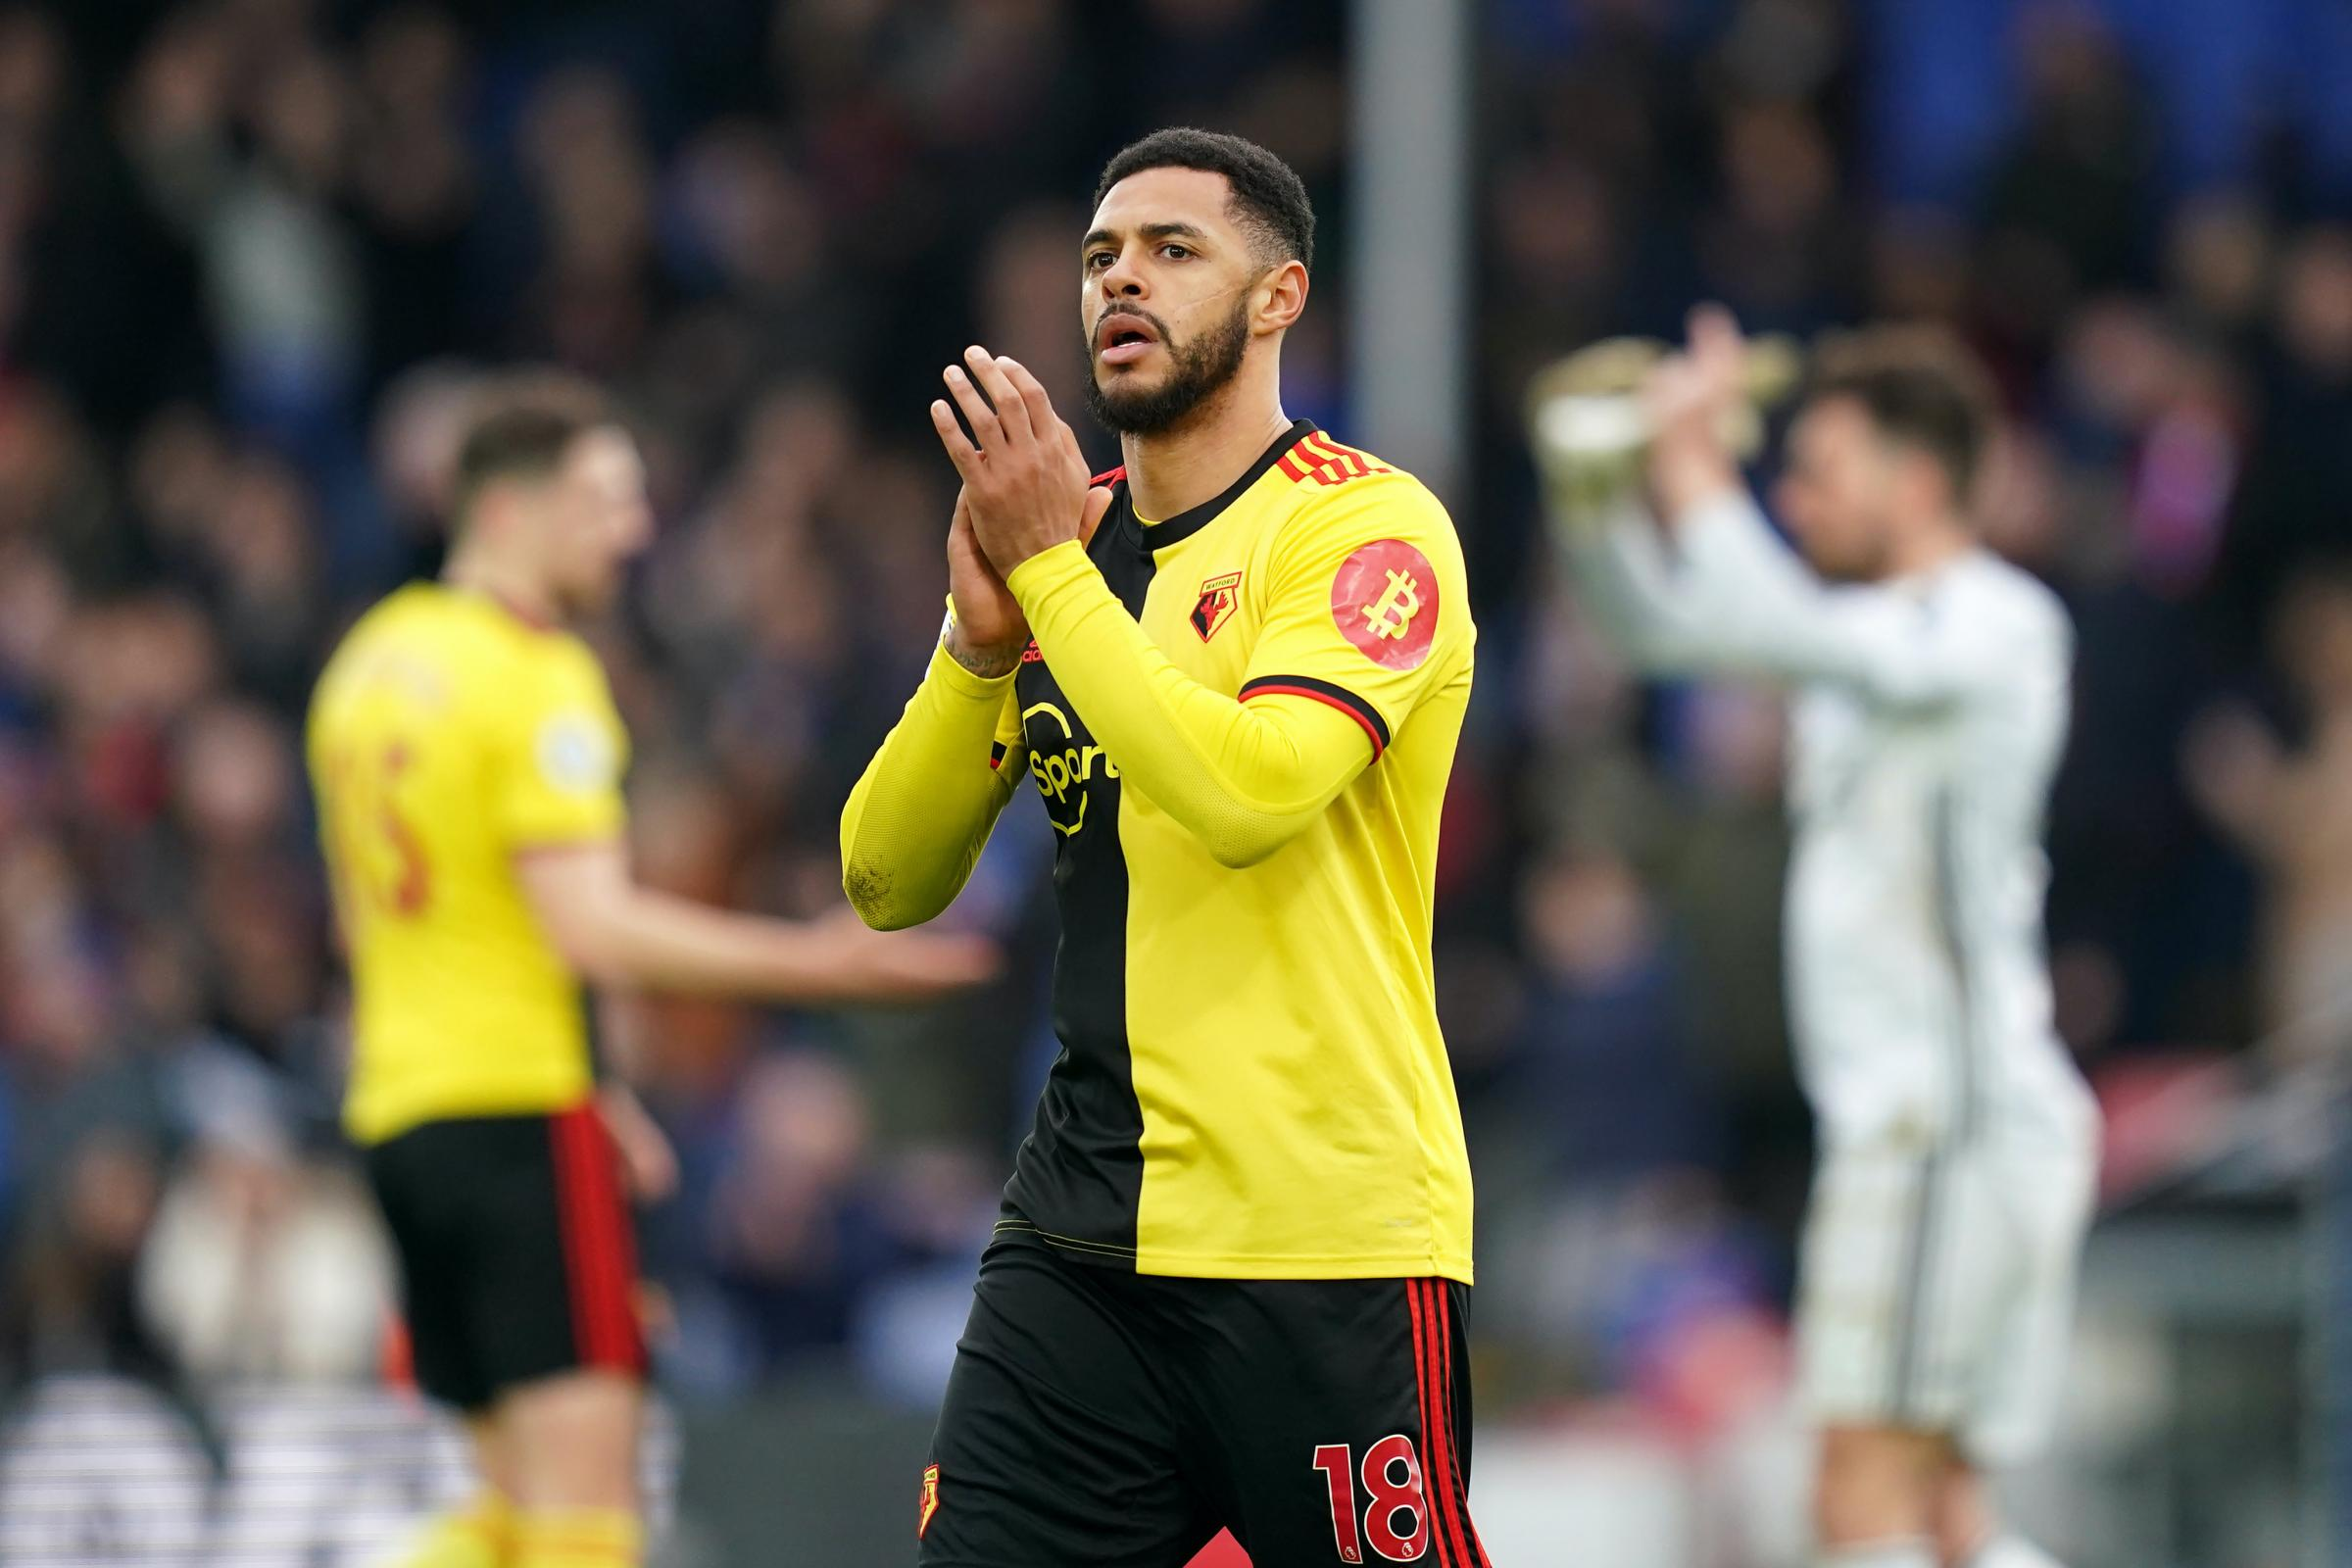 Watford ready to move on from Andre Gray controversy | East Lothian Courier